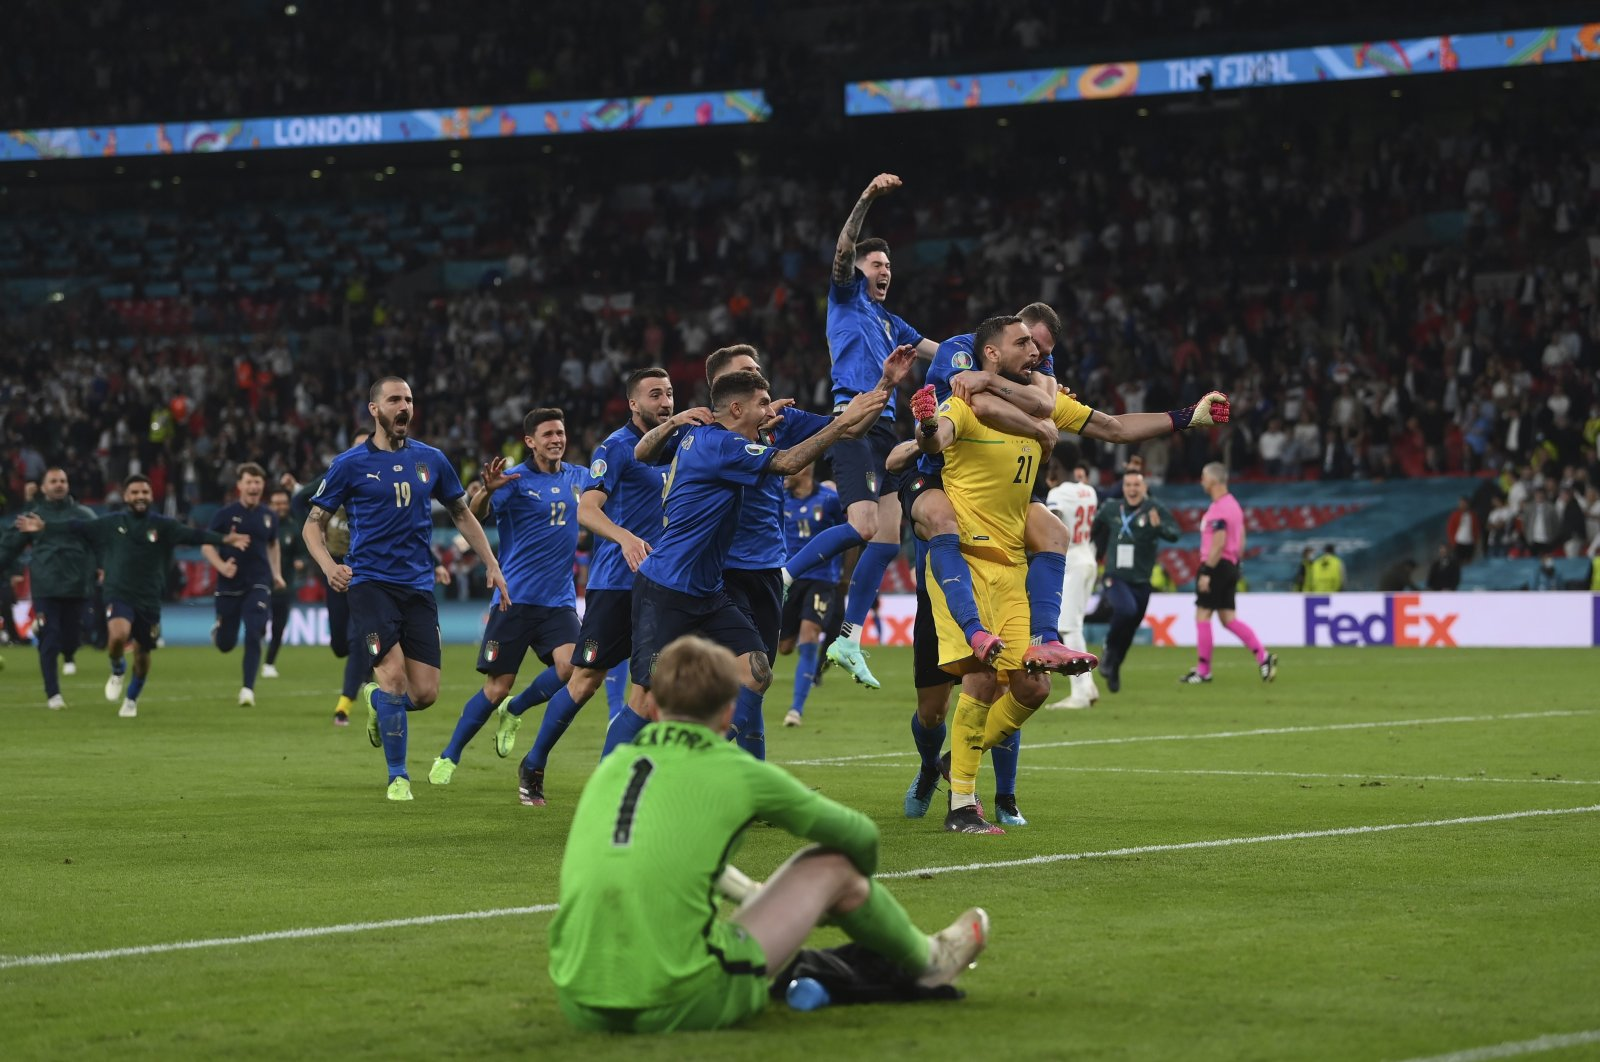 Italian players celebrate winning the penalty shootout against England in the Euro 2020 final at Wembley, London, Englan, July 11, 2021. (AP Photo)